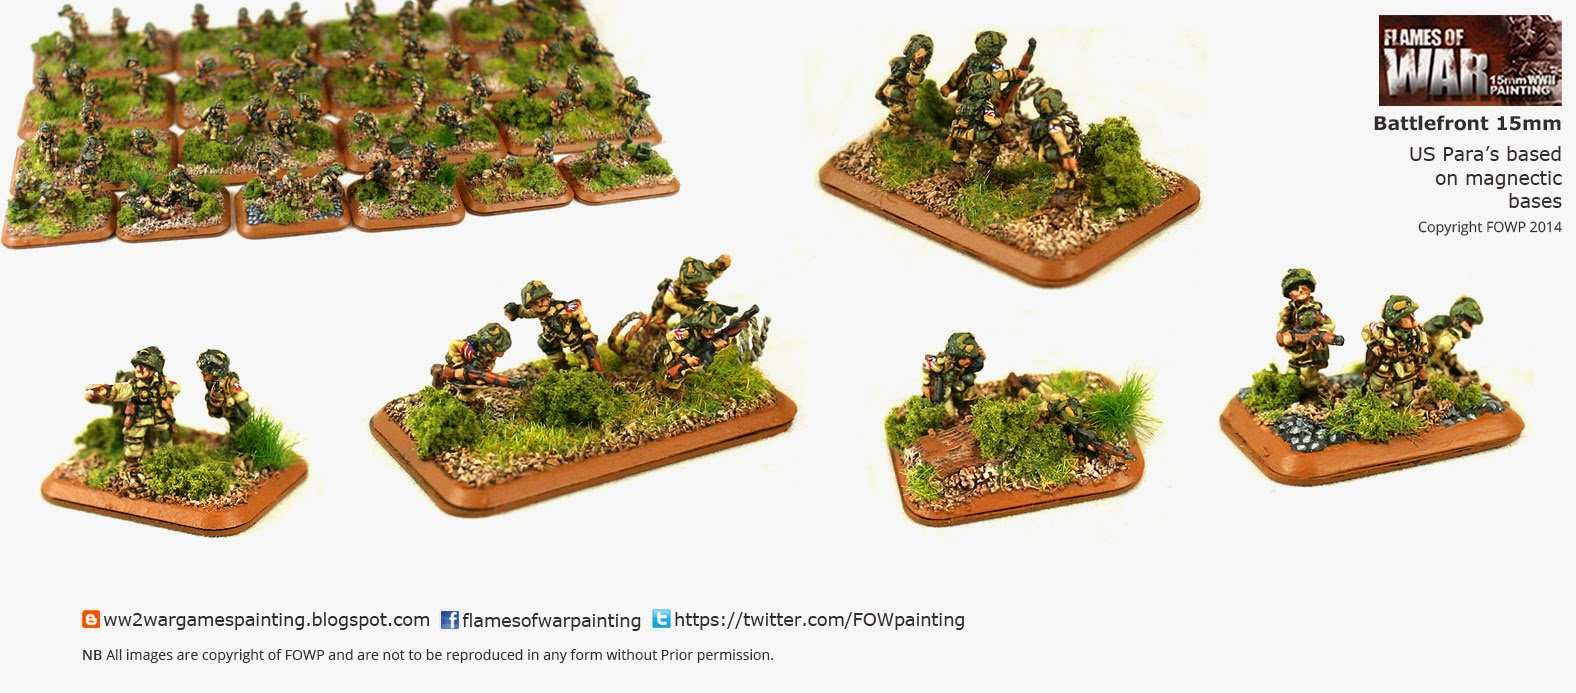 US Paras Battlefront 15mm based with magnetic basing